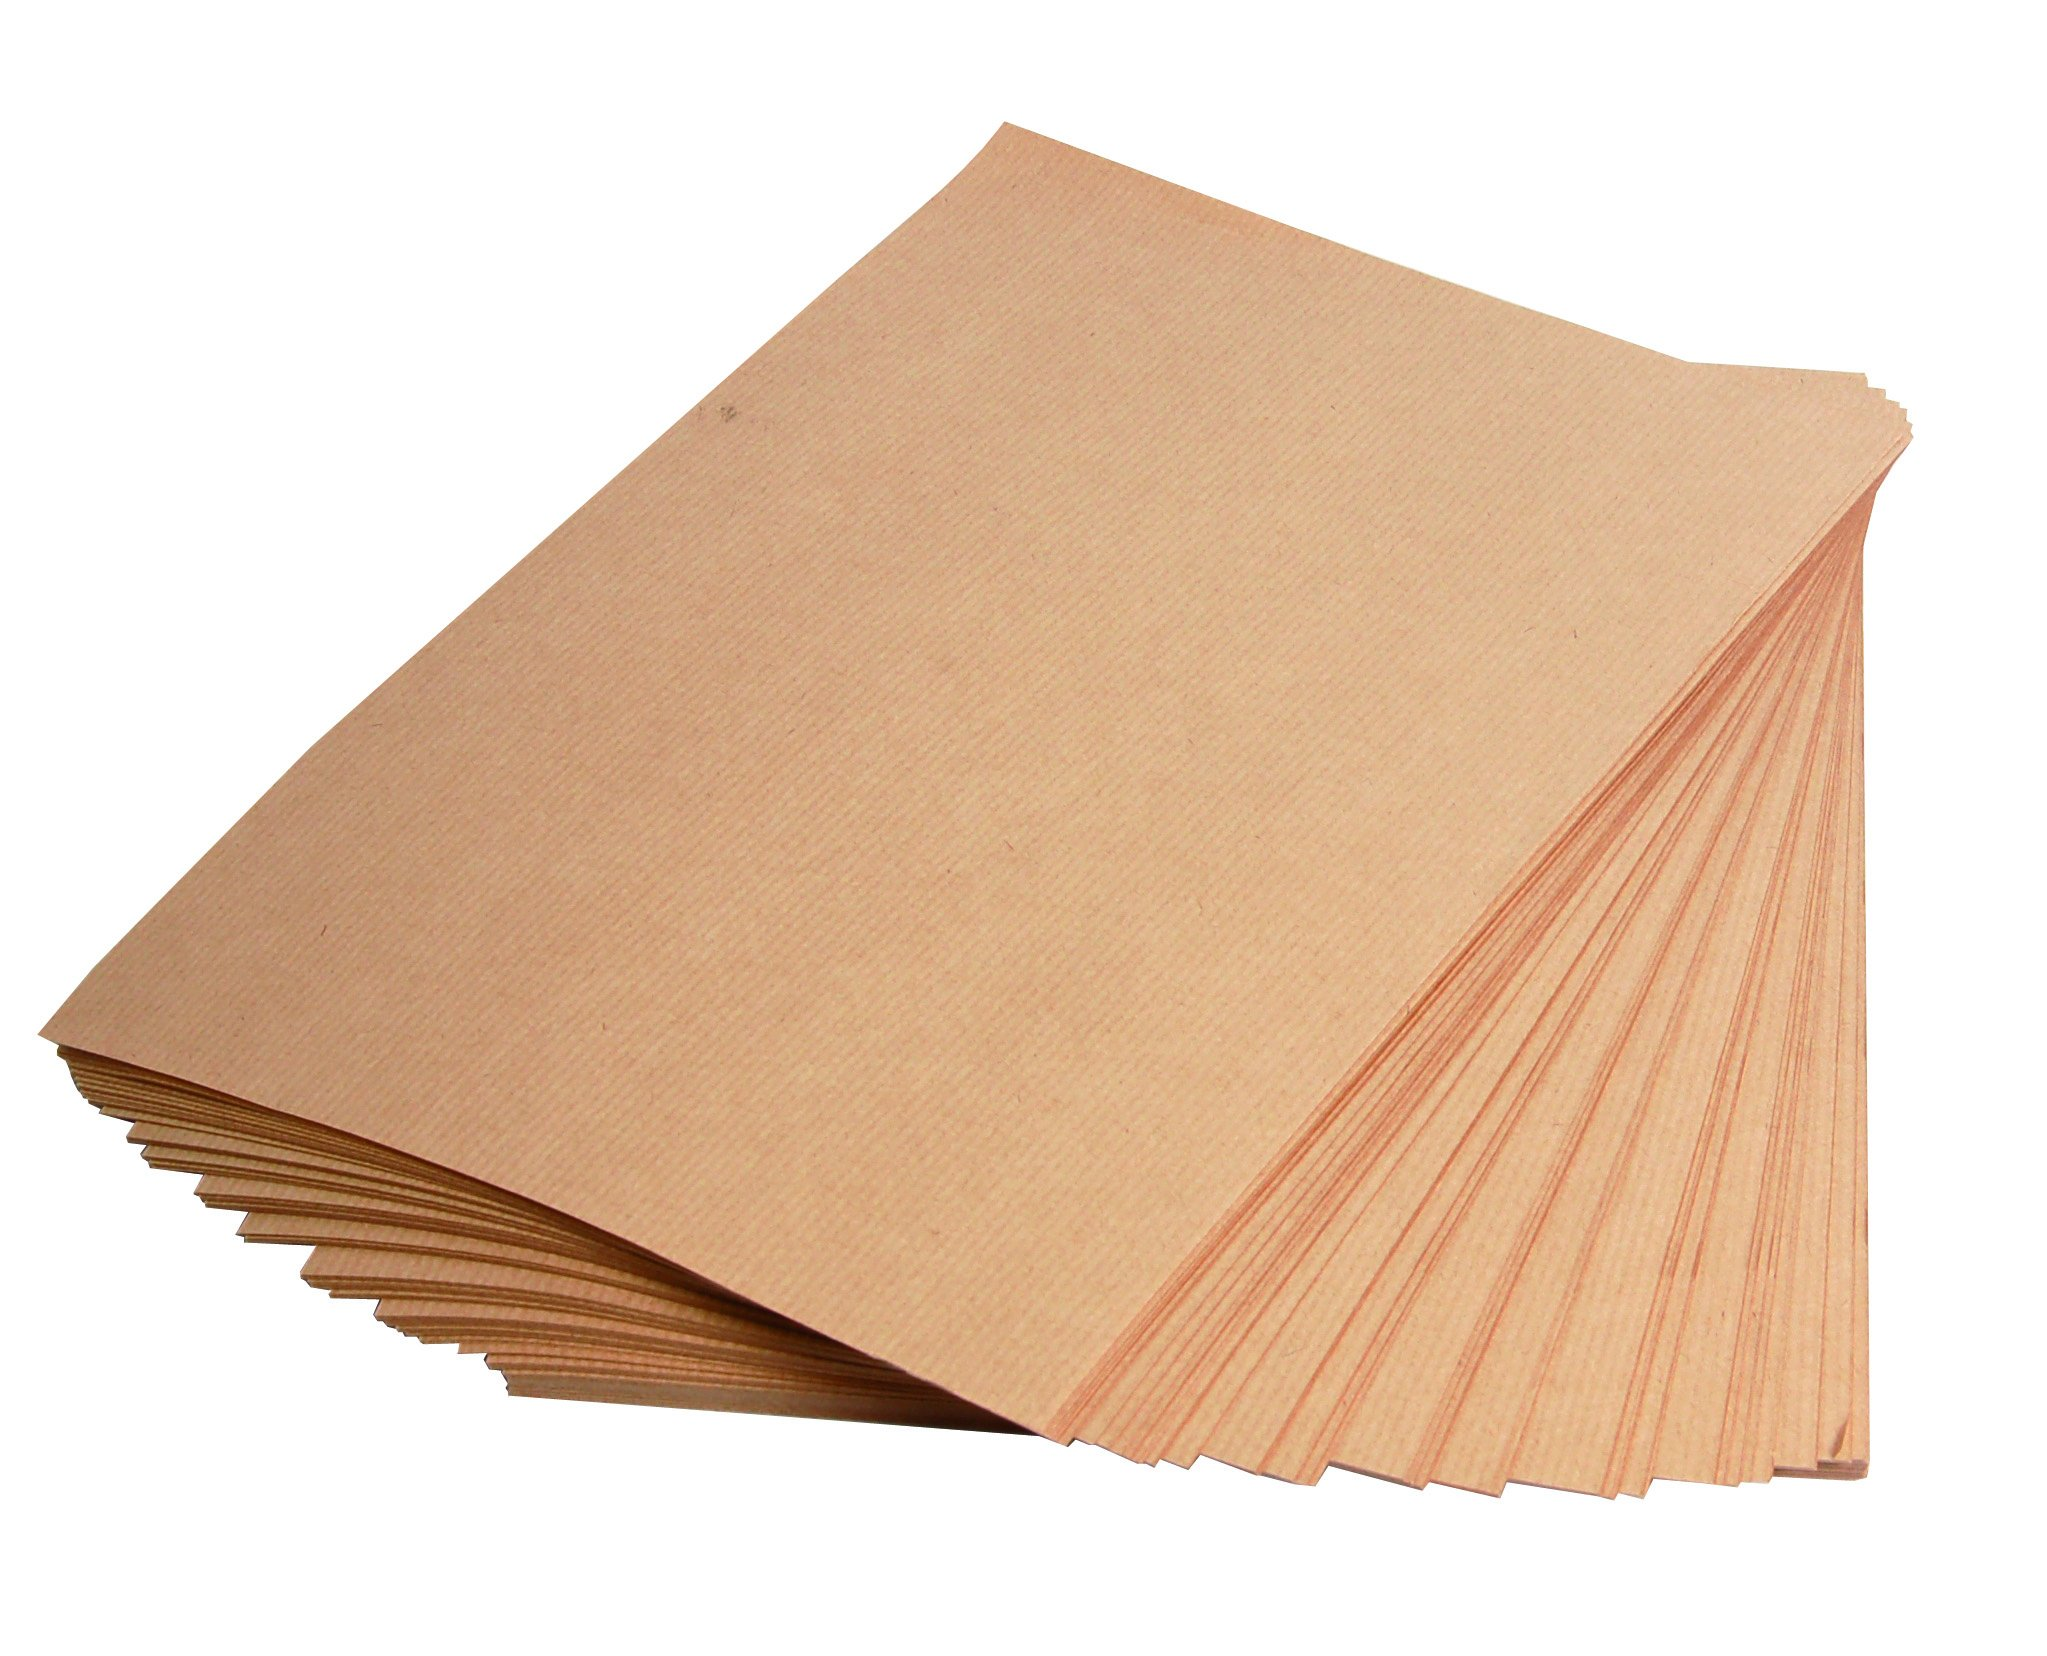 Clairefontaine Kraft Paper, 275 g, 70 x 100 cm - Brown, 25 Sheets by Clairefontaine